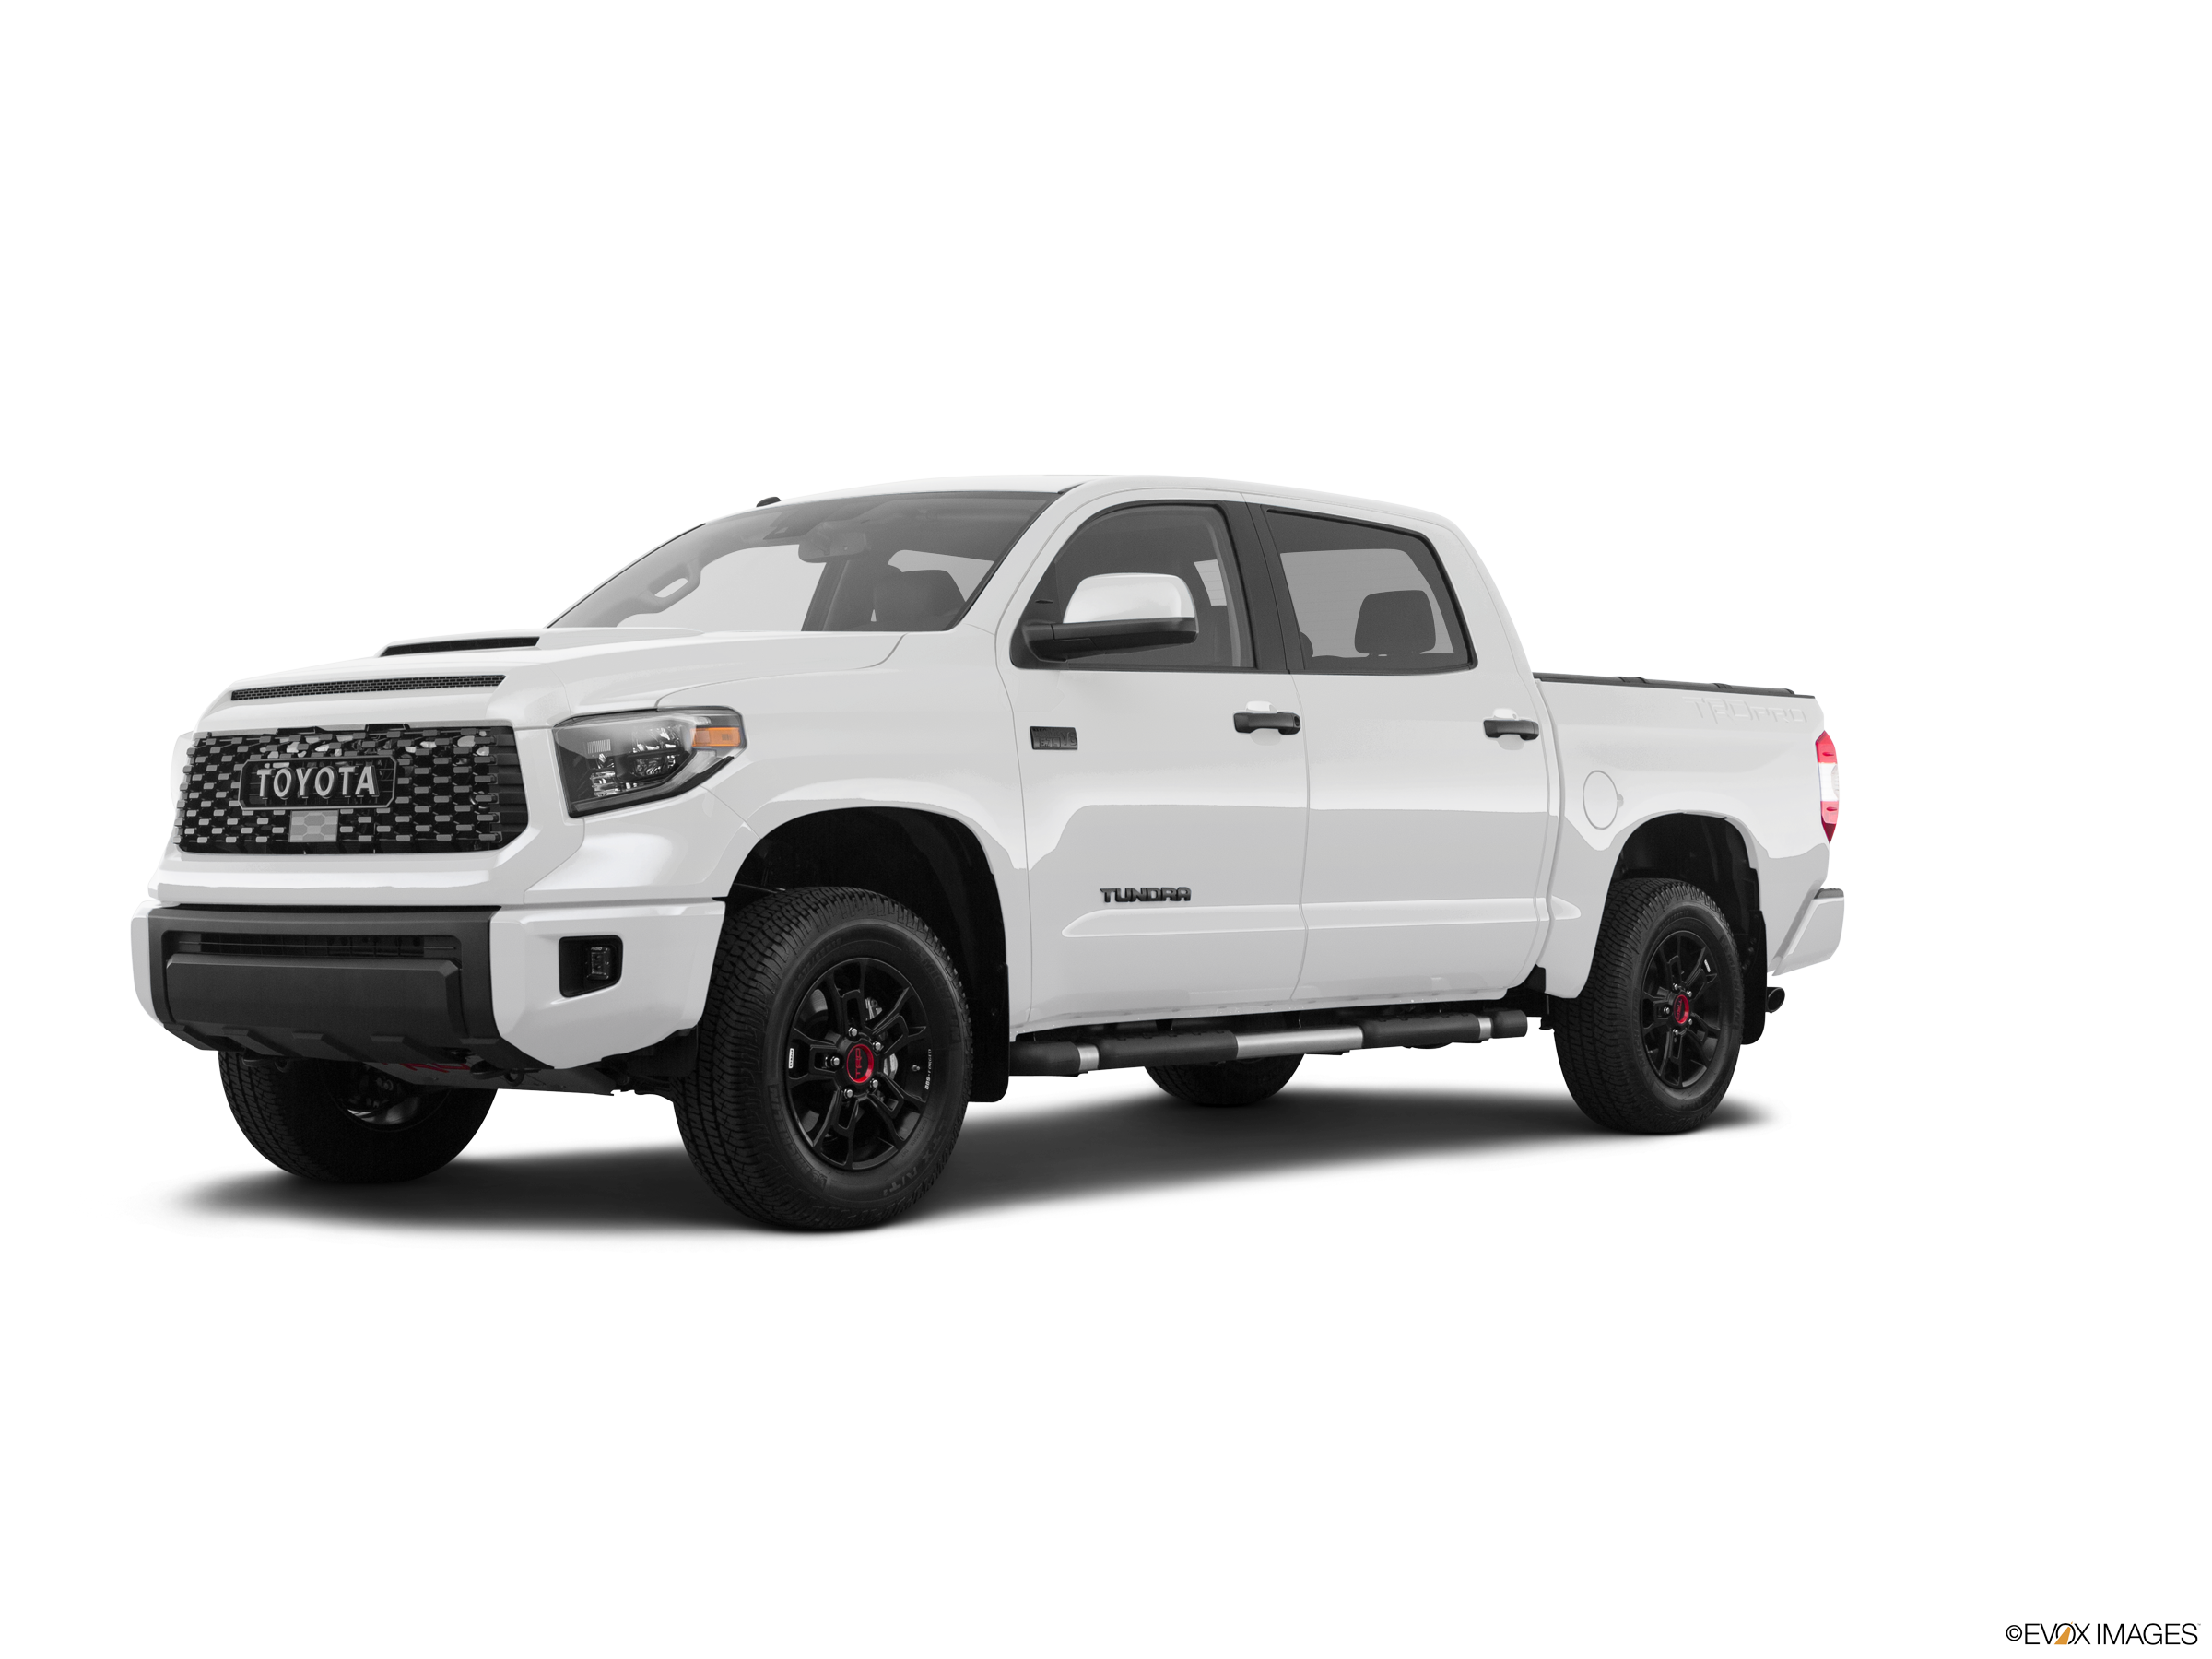 New 2020 Toyota Tundra Crewmax Trd Pro Prices Kelley Blue Book